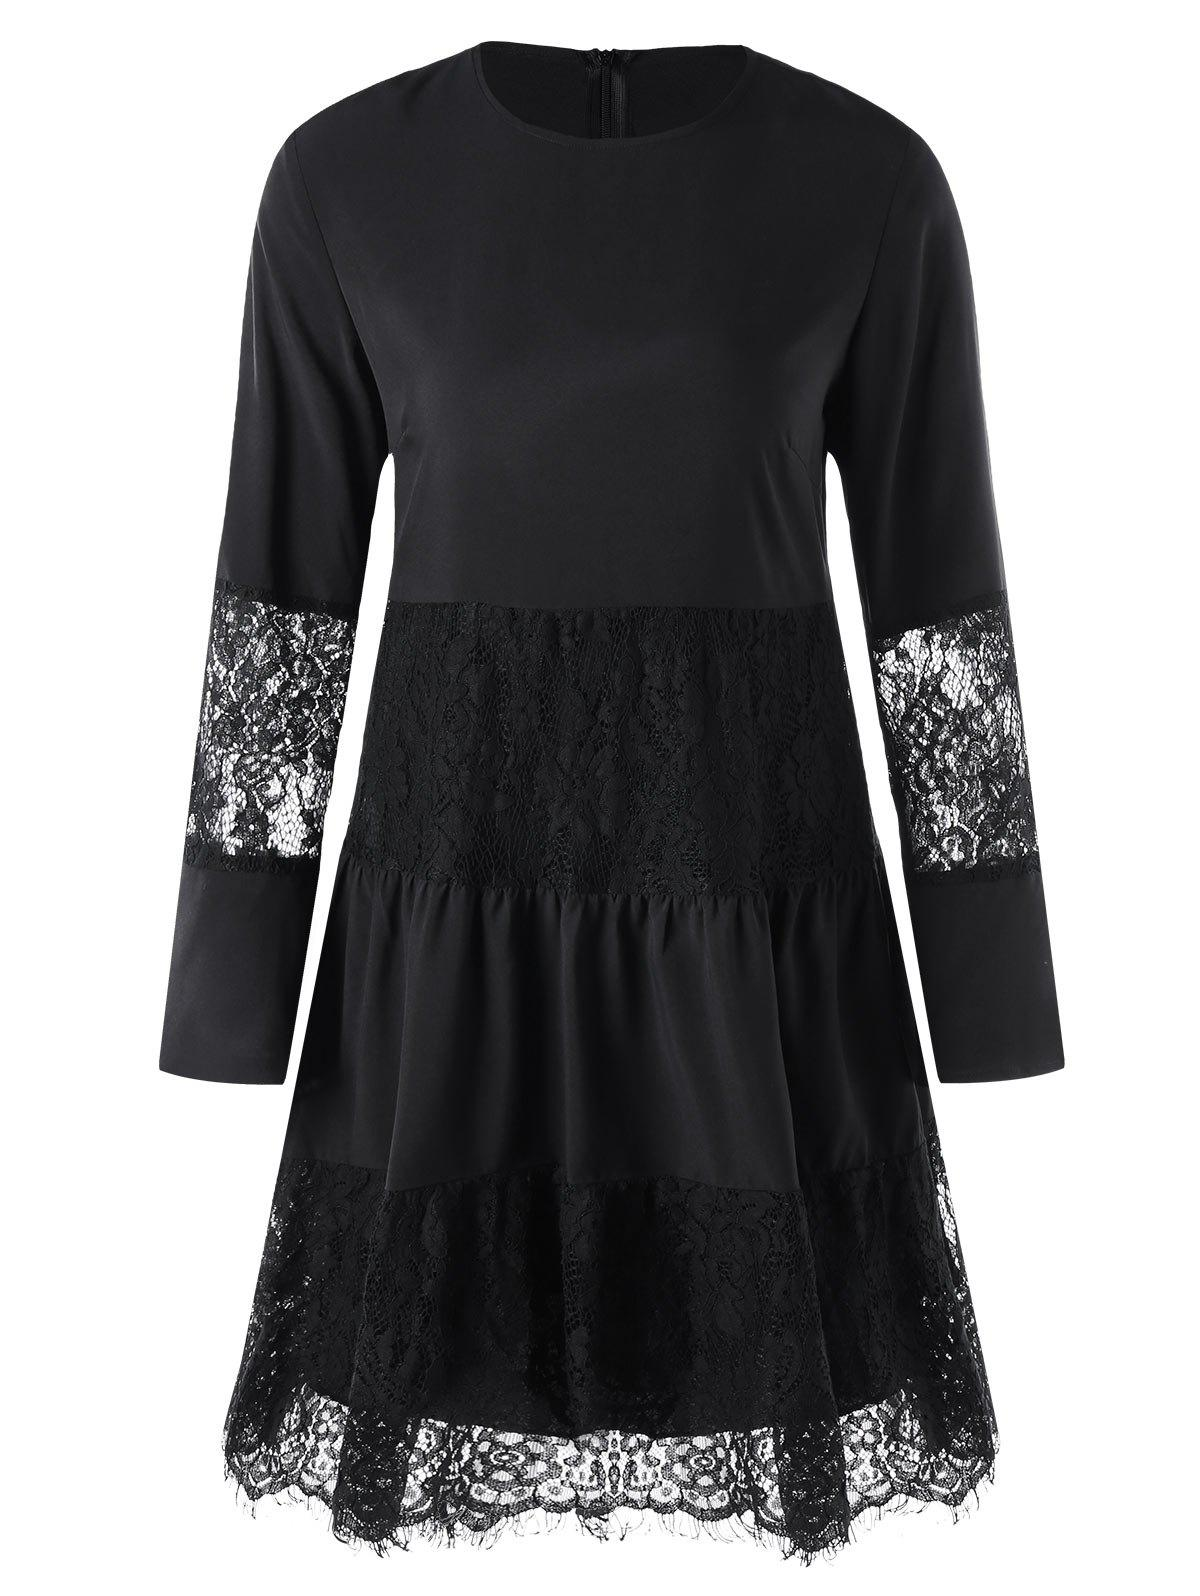 Hot Lace Panel Dress with Slip Dress